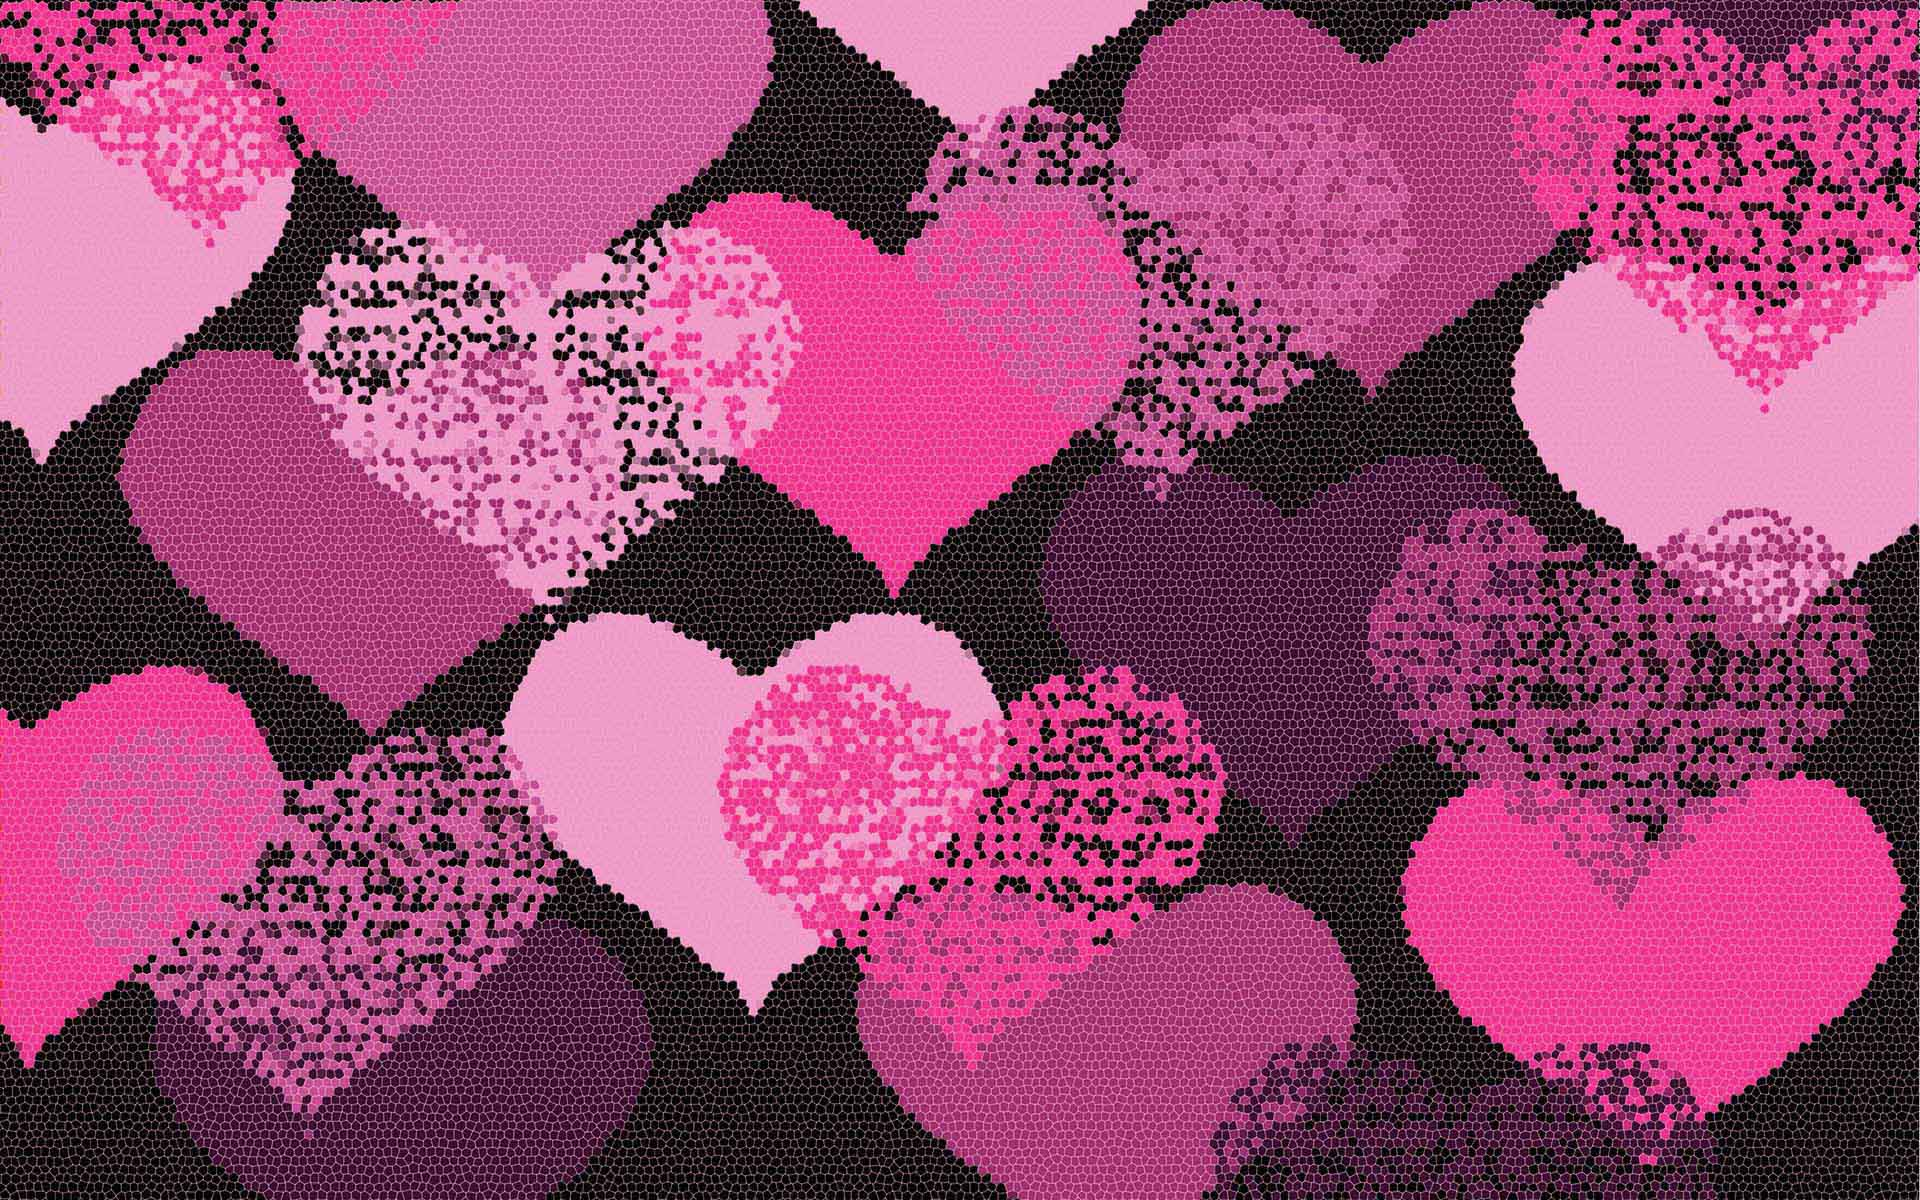 hearts desktop wallpaper - photo #48